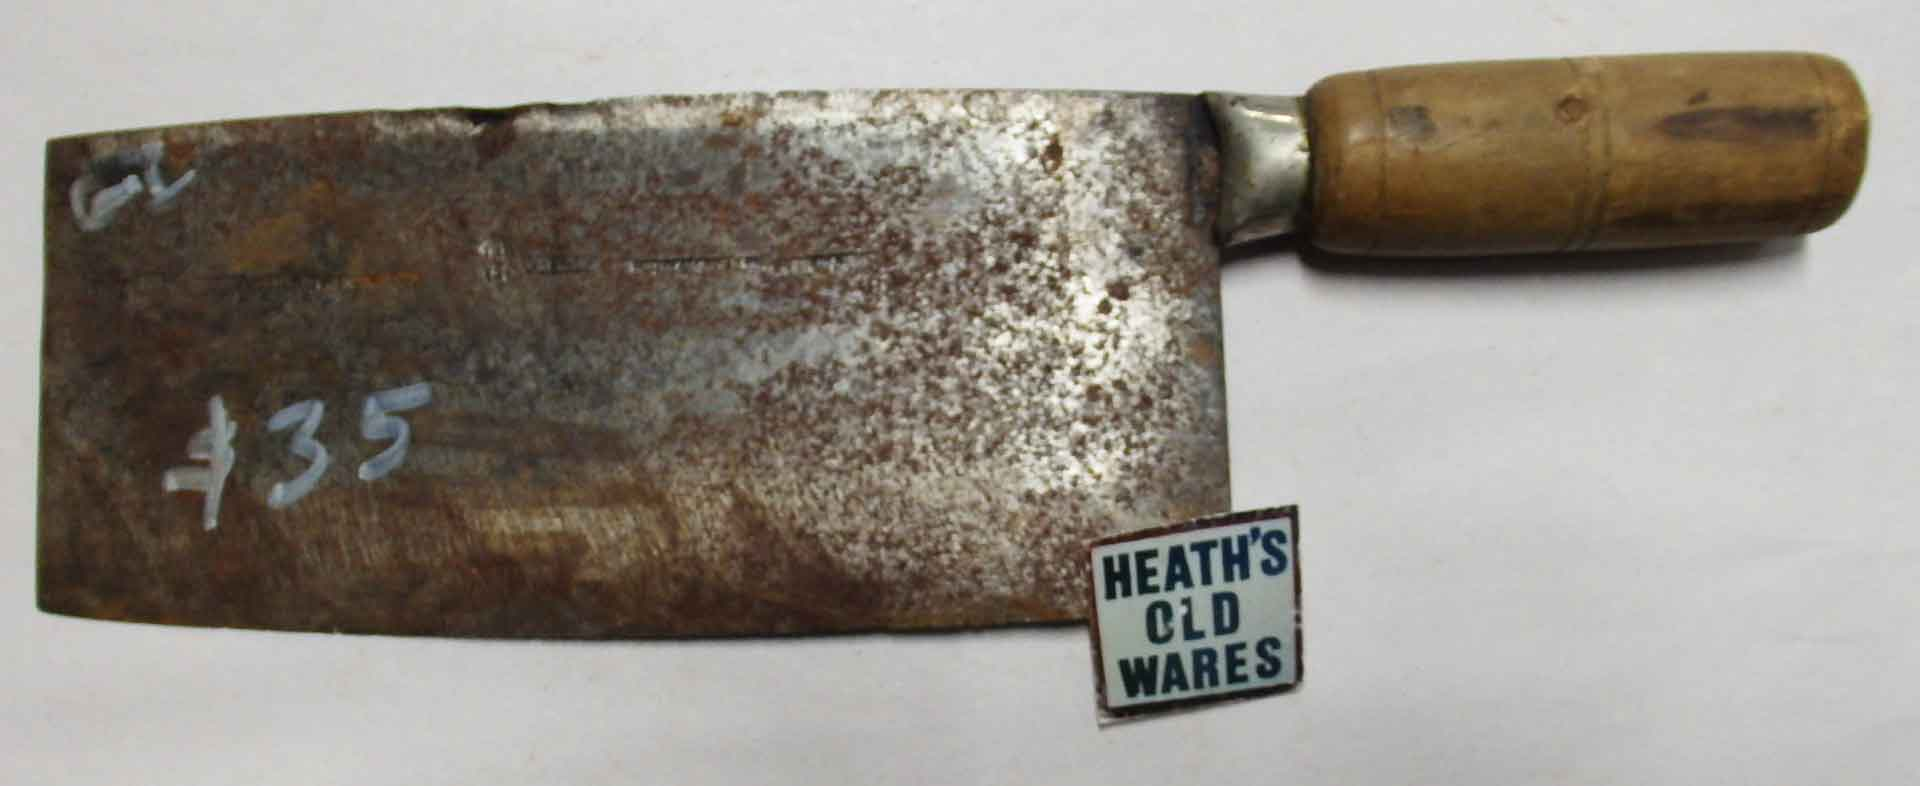 Cleaver $35 for sale at Heaths Old Wares, Collectables, Antiques & Industrial Antiques, 19-21 Broadway, Burringbar NSW 2483 Ph 0266771181 open 7 days